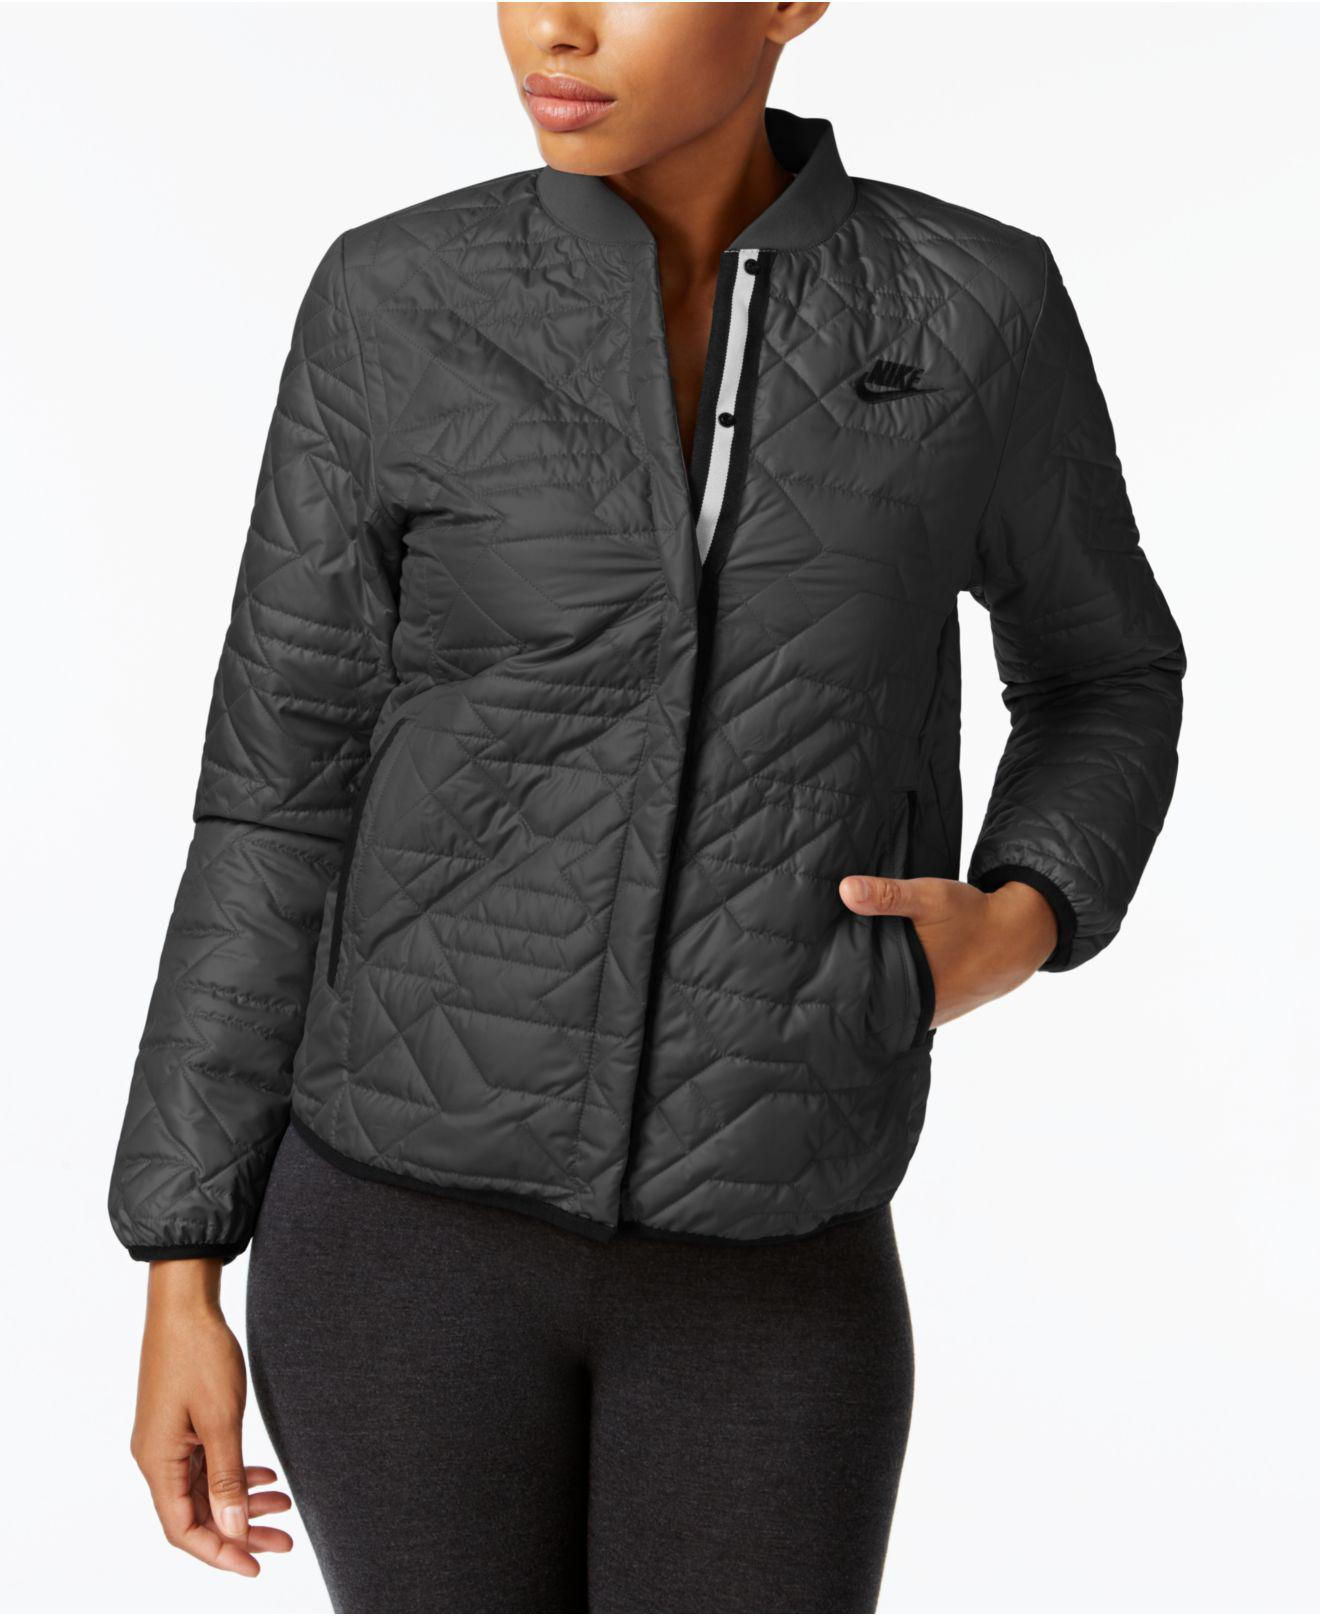 8c019a464 Nike Black Sportswear Quilted Jacket